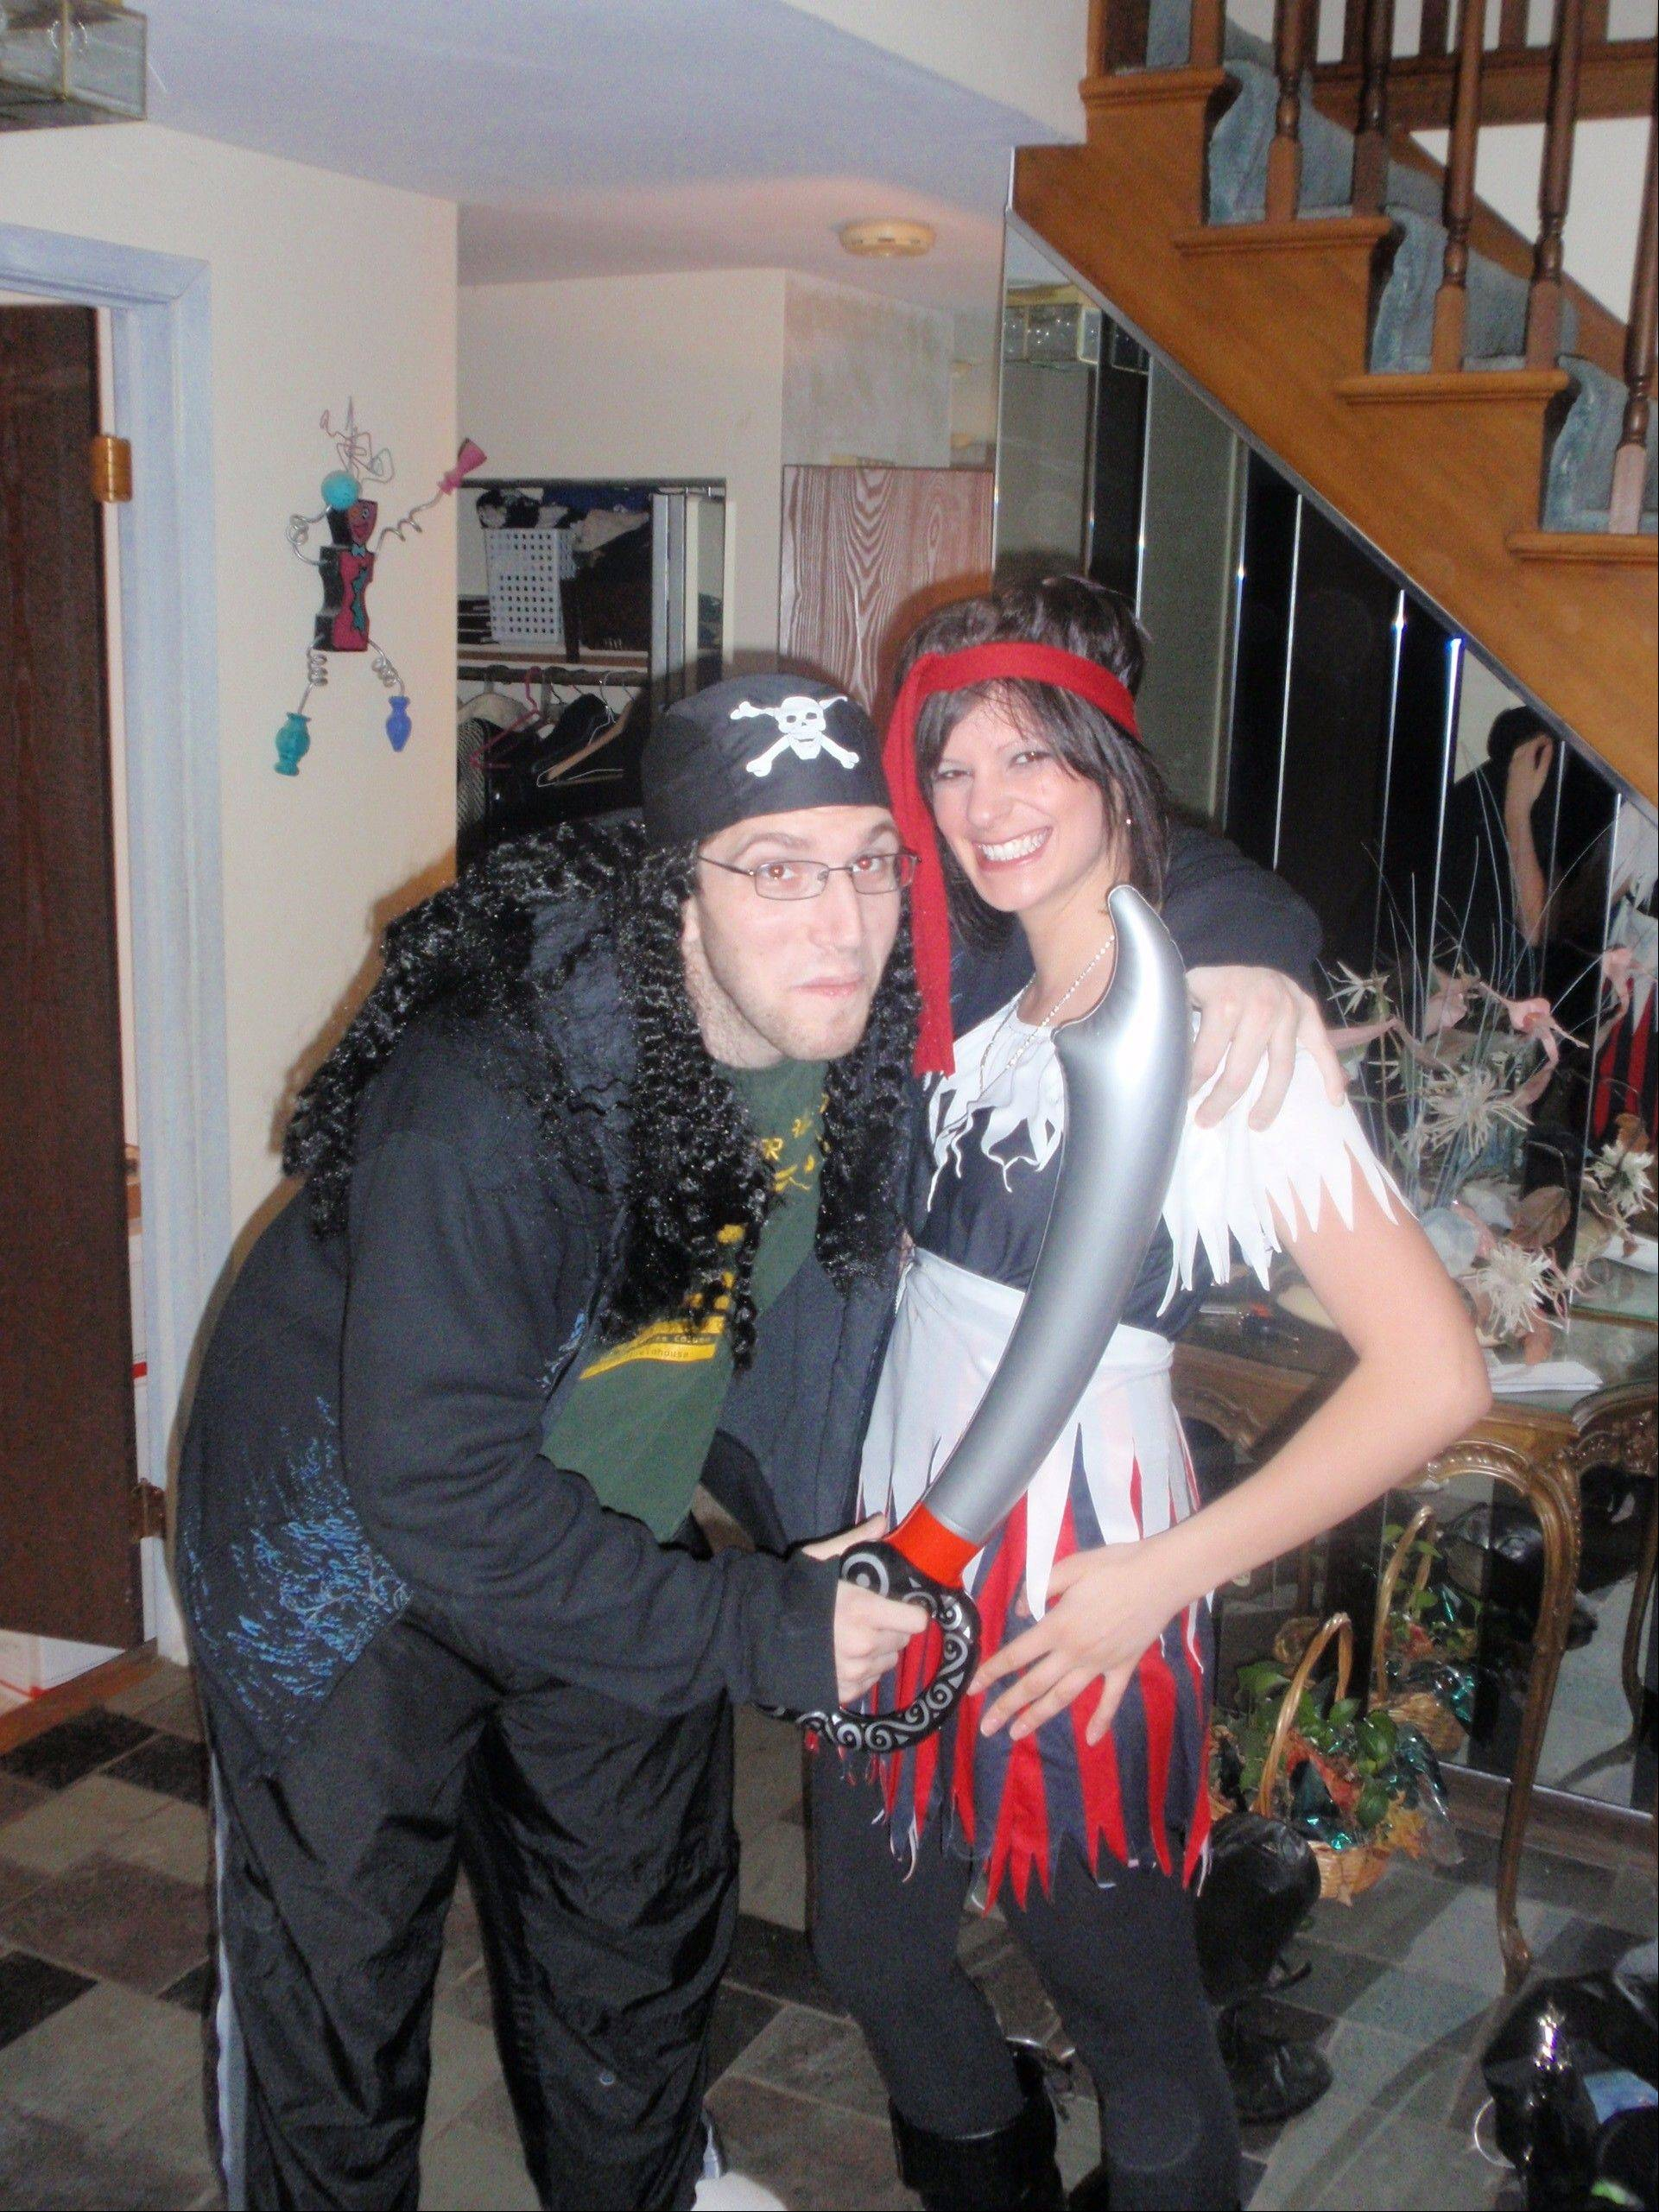 Support from family and friends helped Ben Settler through treatment for Hodgkin lymphoma. When he was recovering from chemotherapy and missing Halloween parties, his now-fiance Caren helped him don a pirate costume for a small celebration at home.